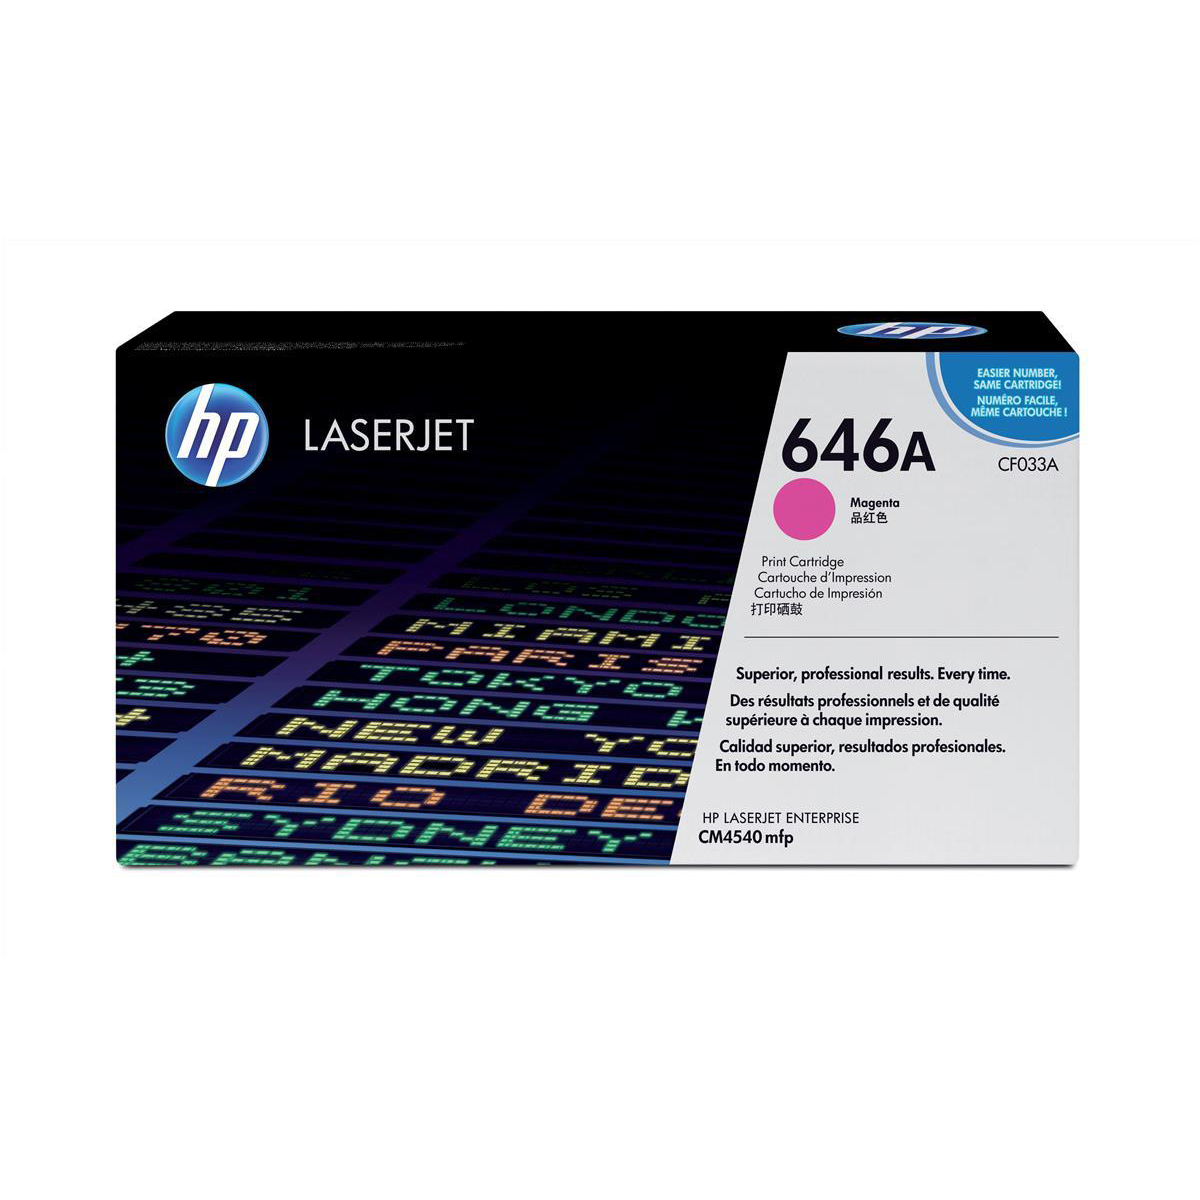 Hewlett Packard [HP] No. 646A Laser Toner Cartridge Page Life 12500pp Magenta Ref CF033A